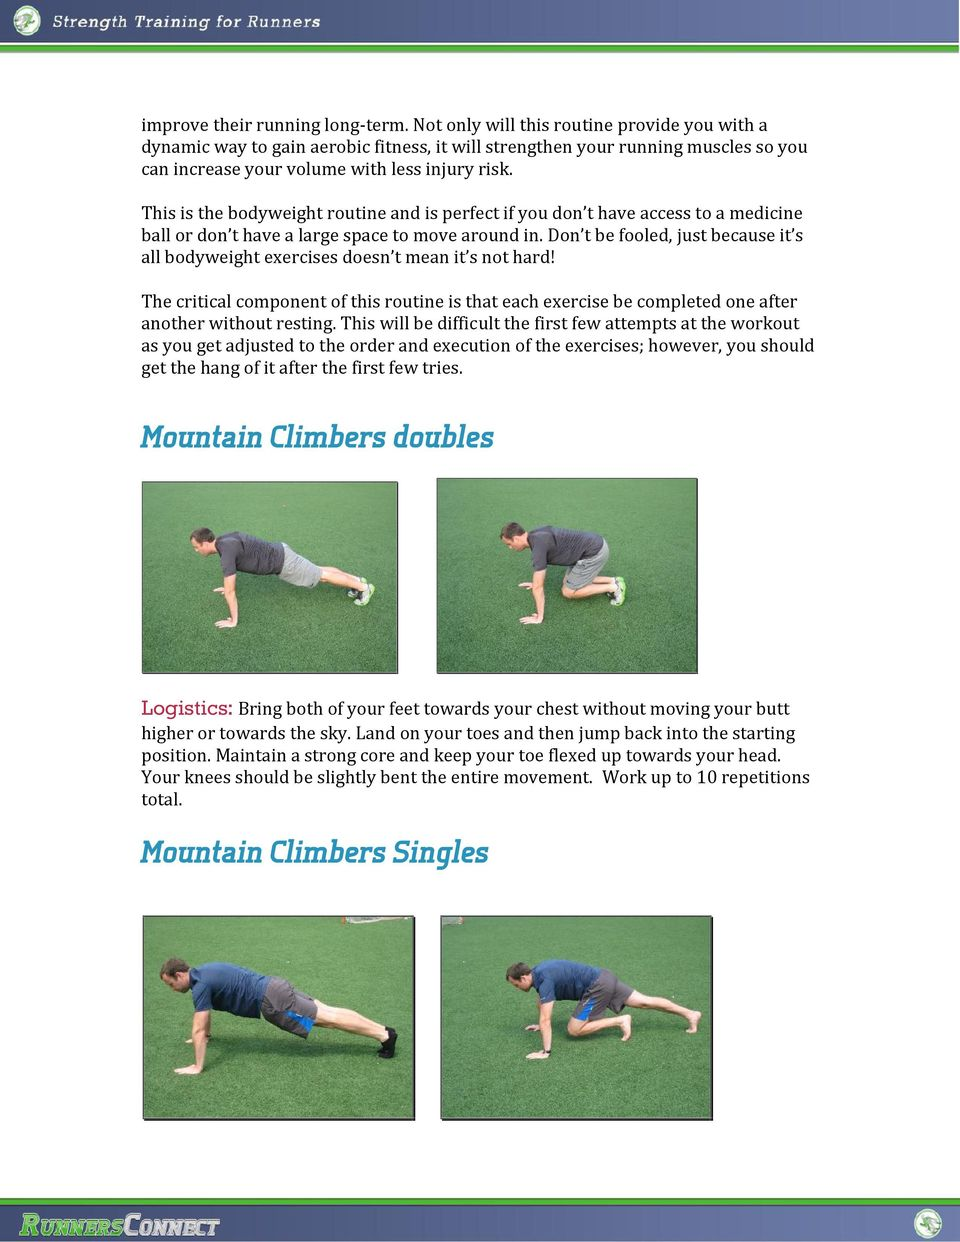 This is the bodyweight routine and is perfect if you don t have access to a medicine ball or don t have a large space to move around in.